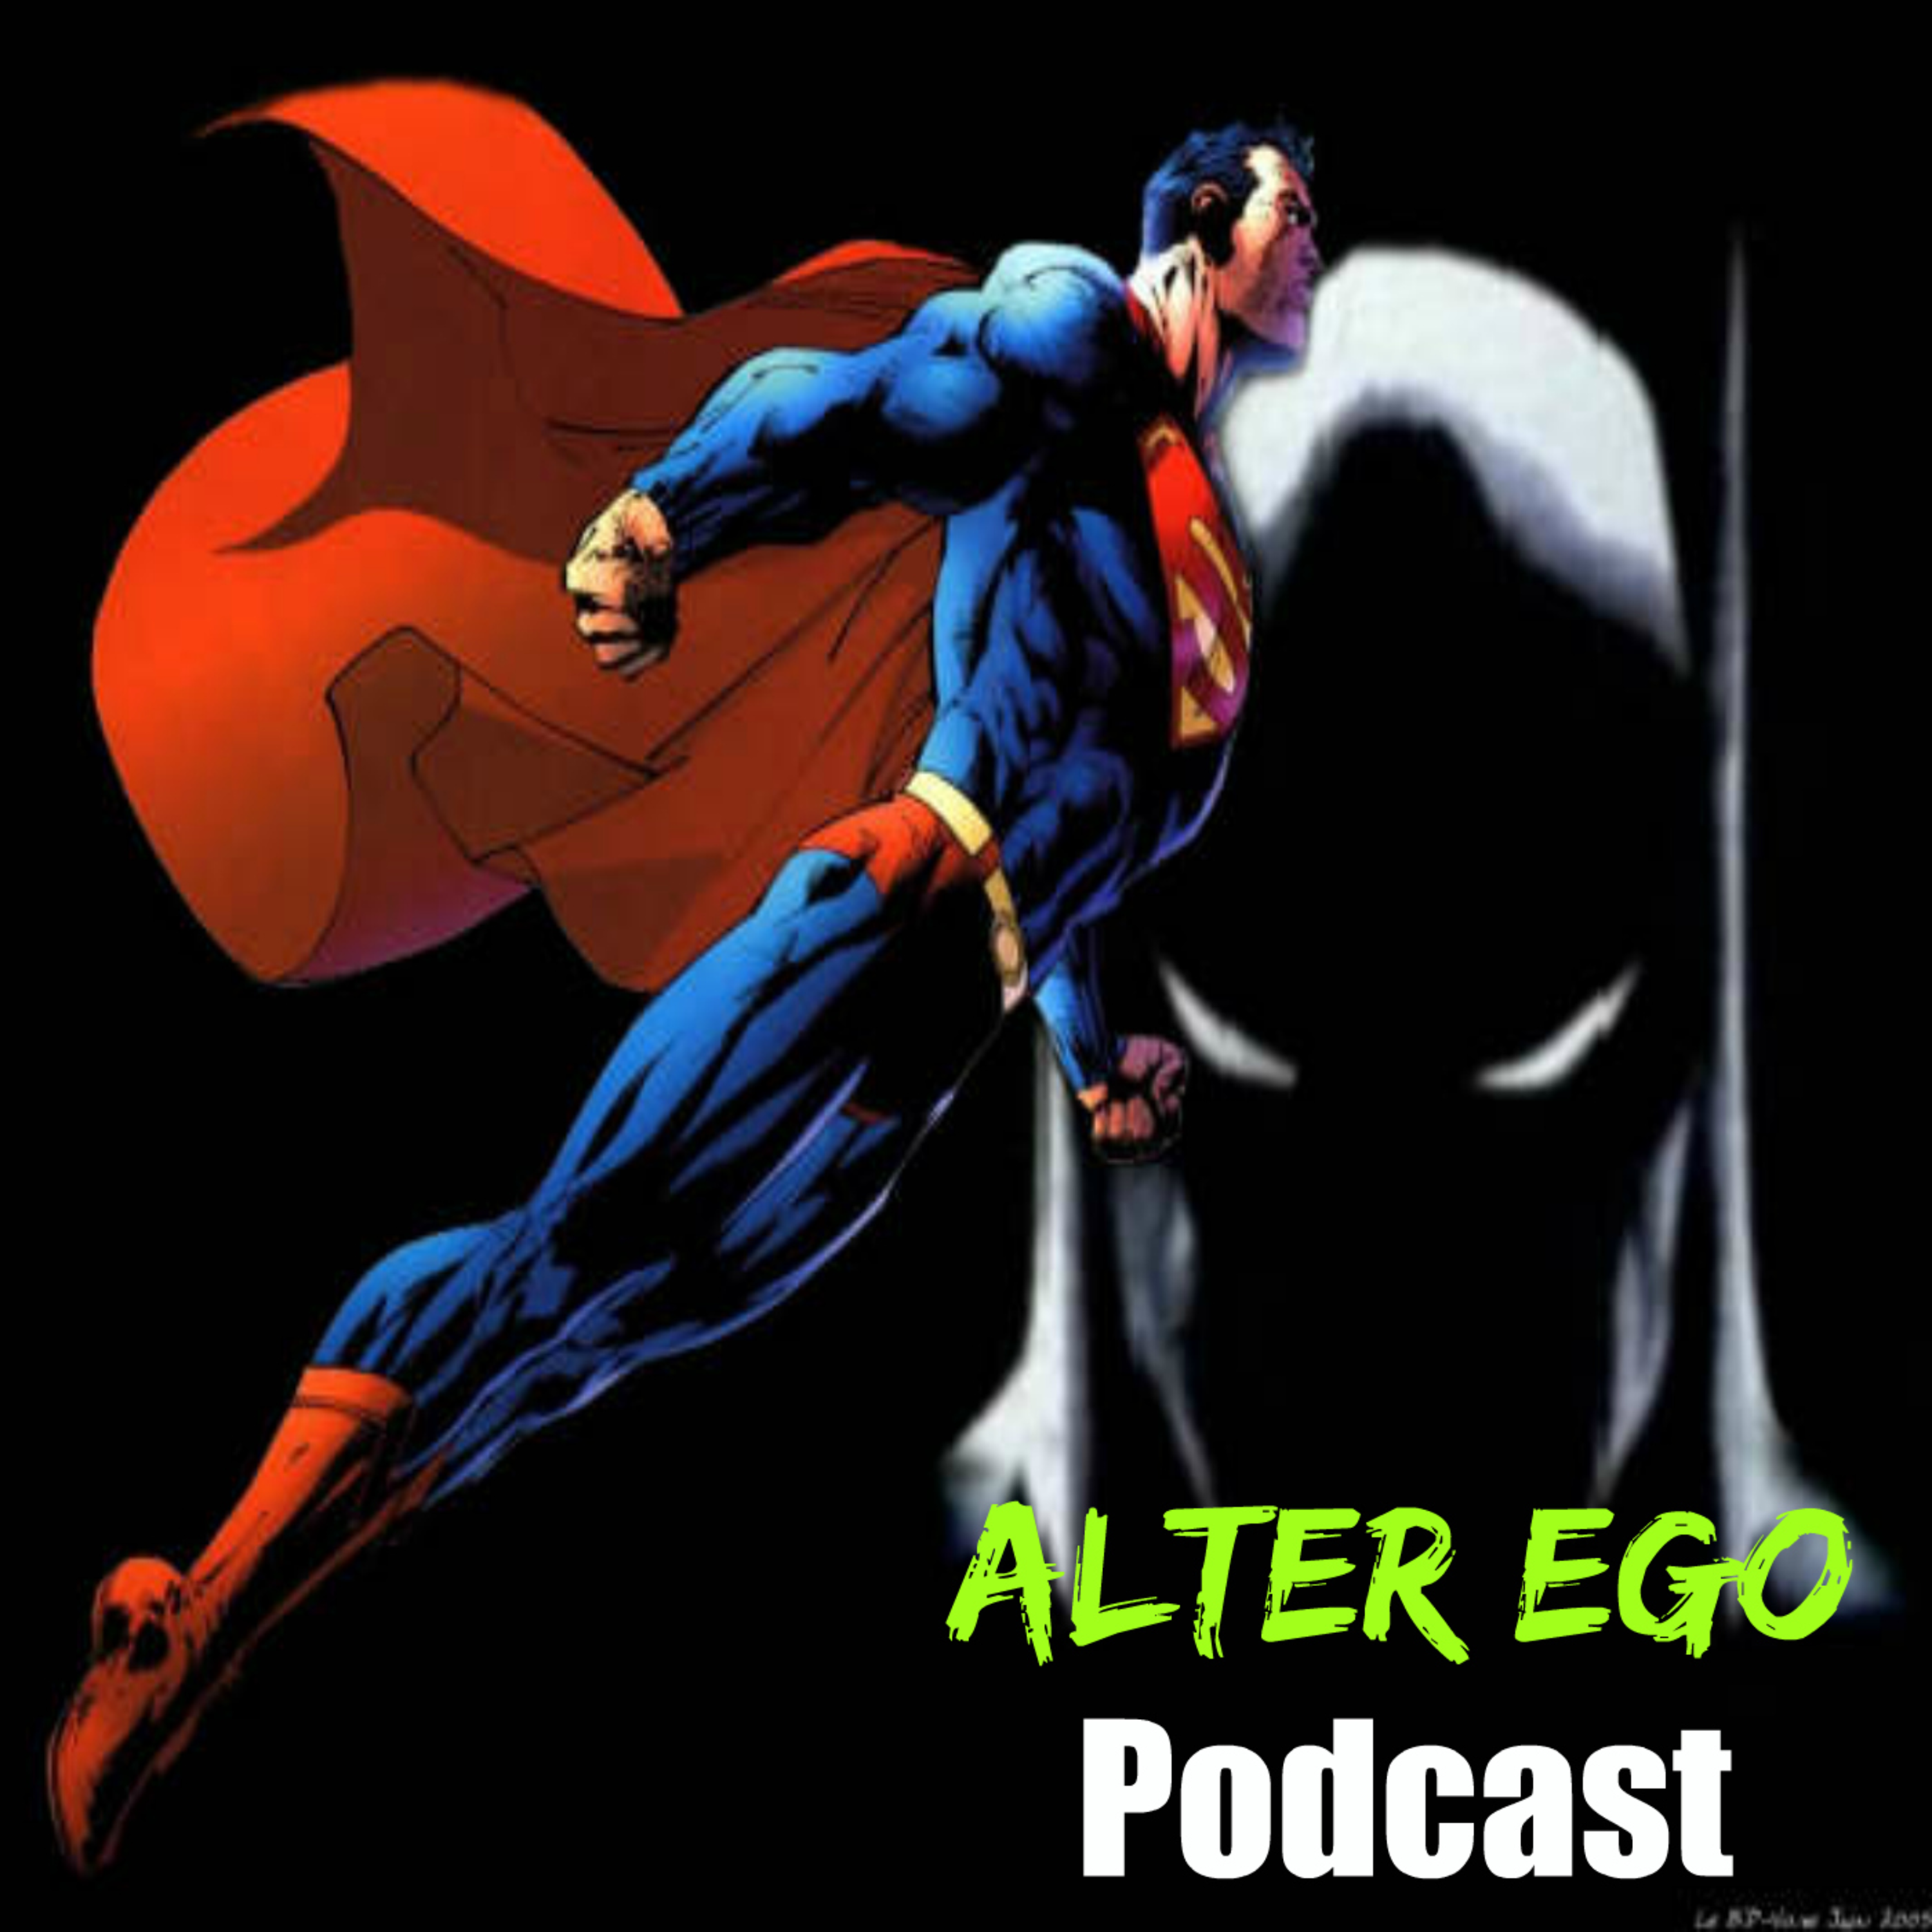 Alter Ego by jvthemoviedirector on Apple Podcasts